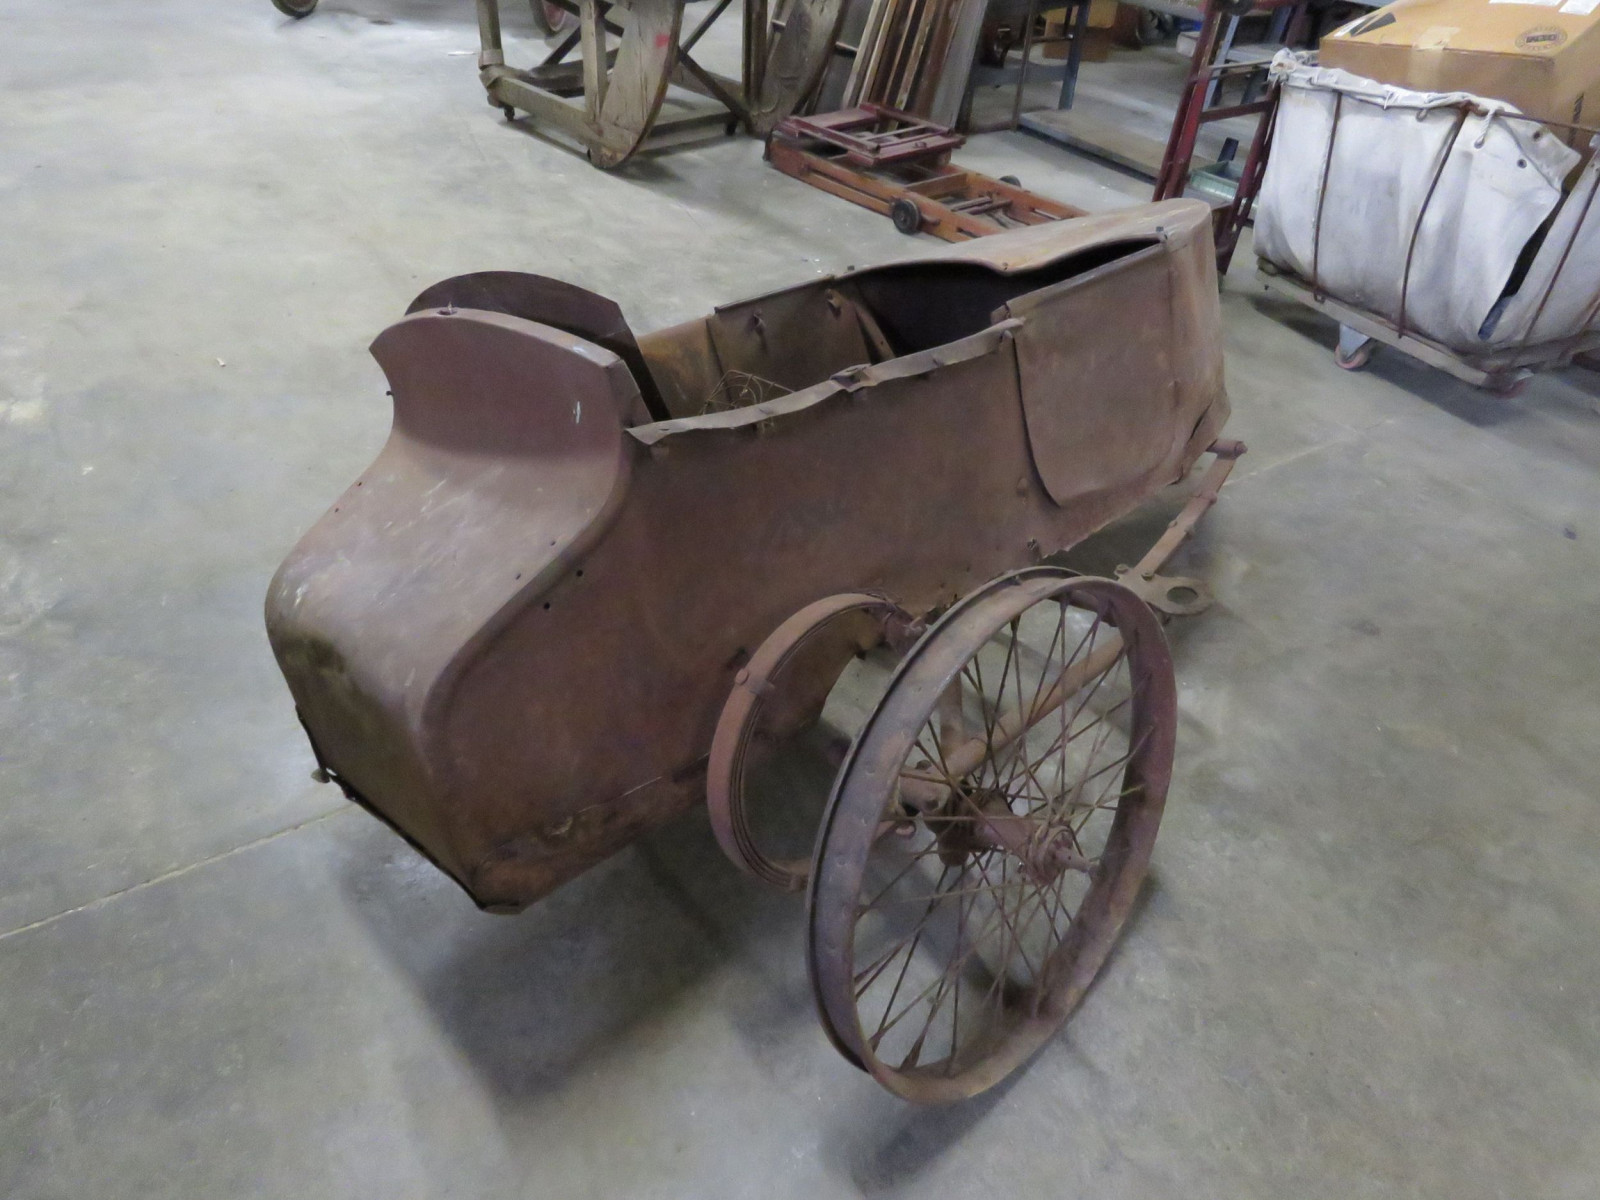 RARE Harley Davidson Motorcycle Side Car - Image 3